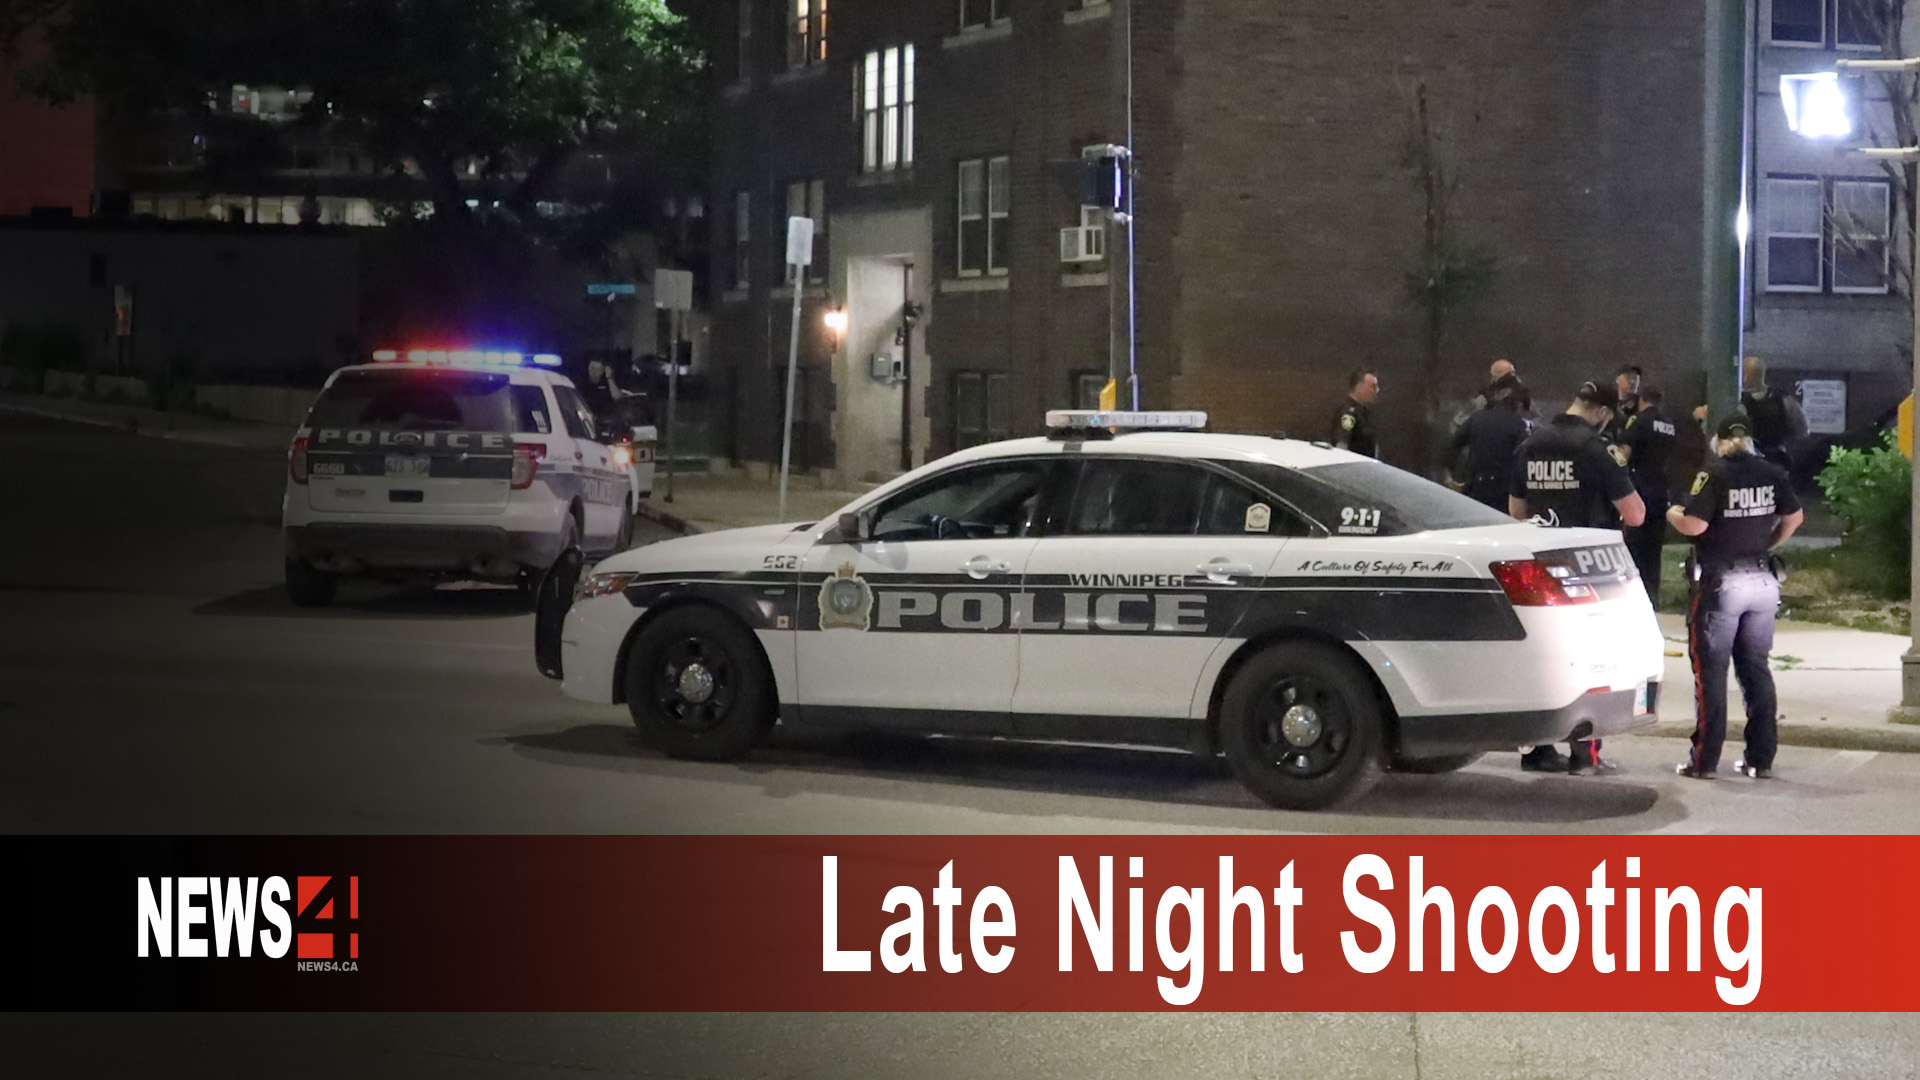 Late Night Shooting Graphic